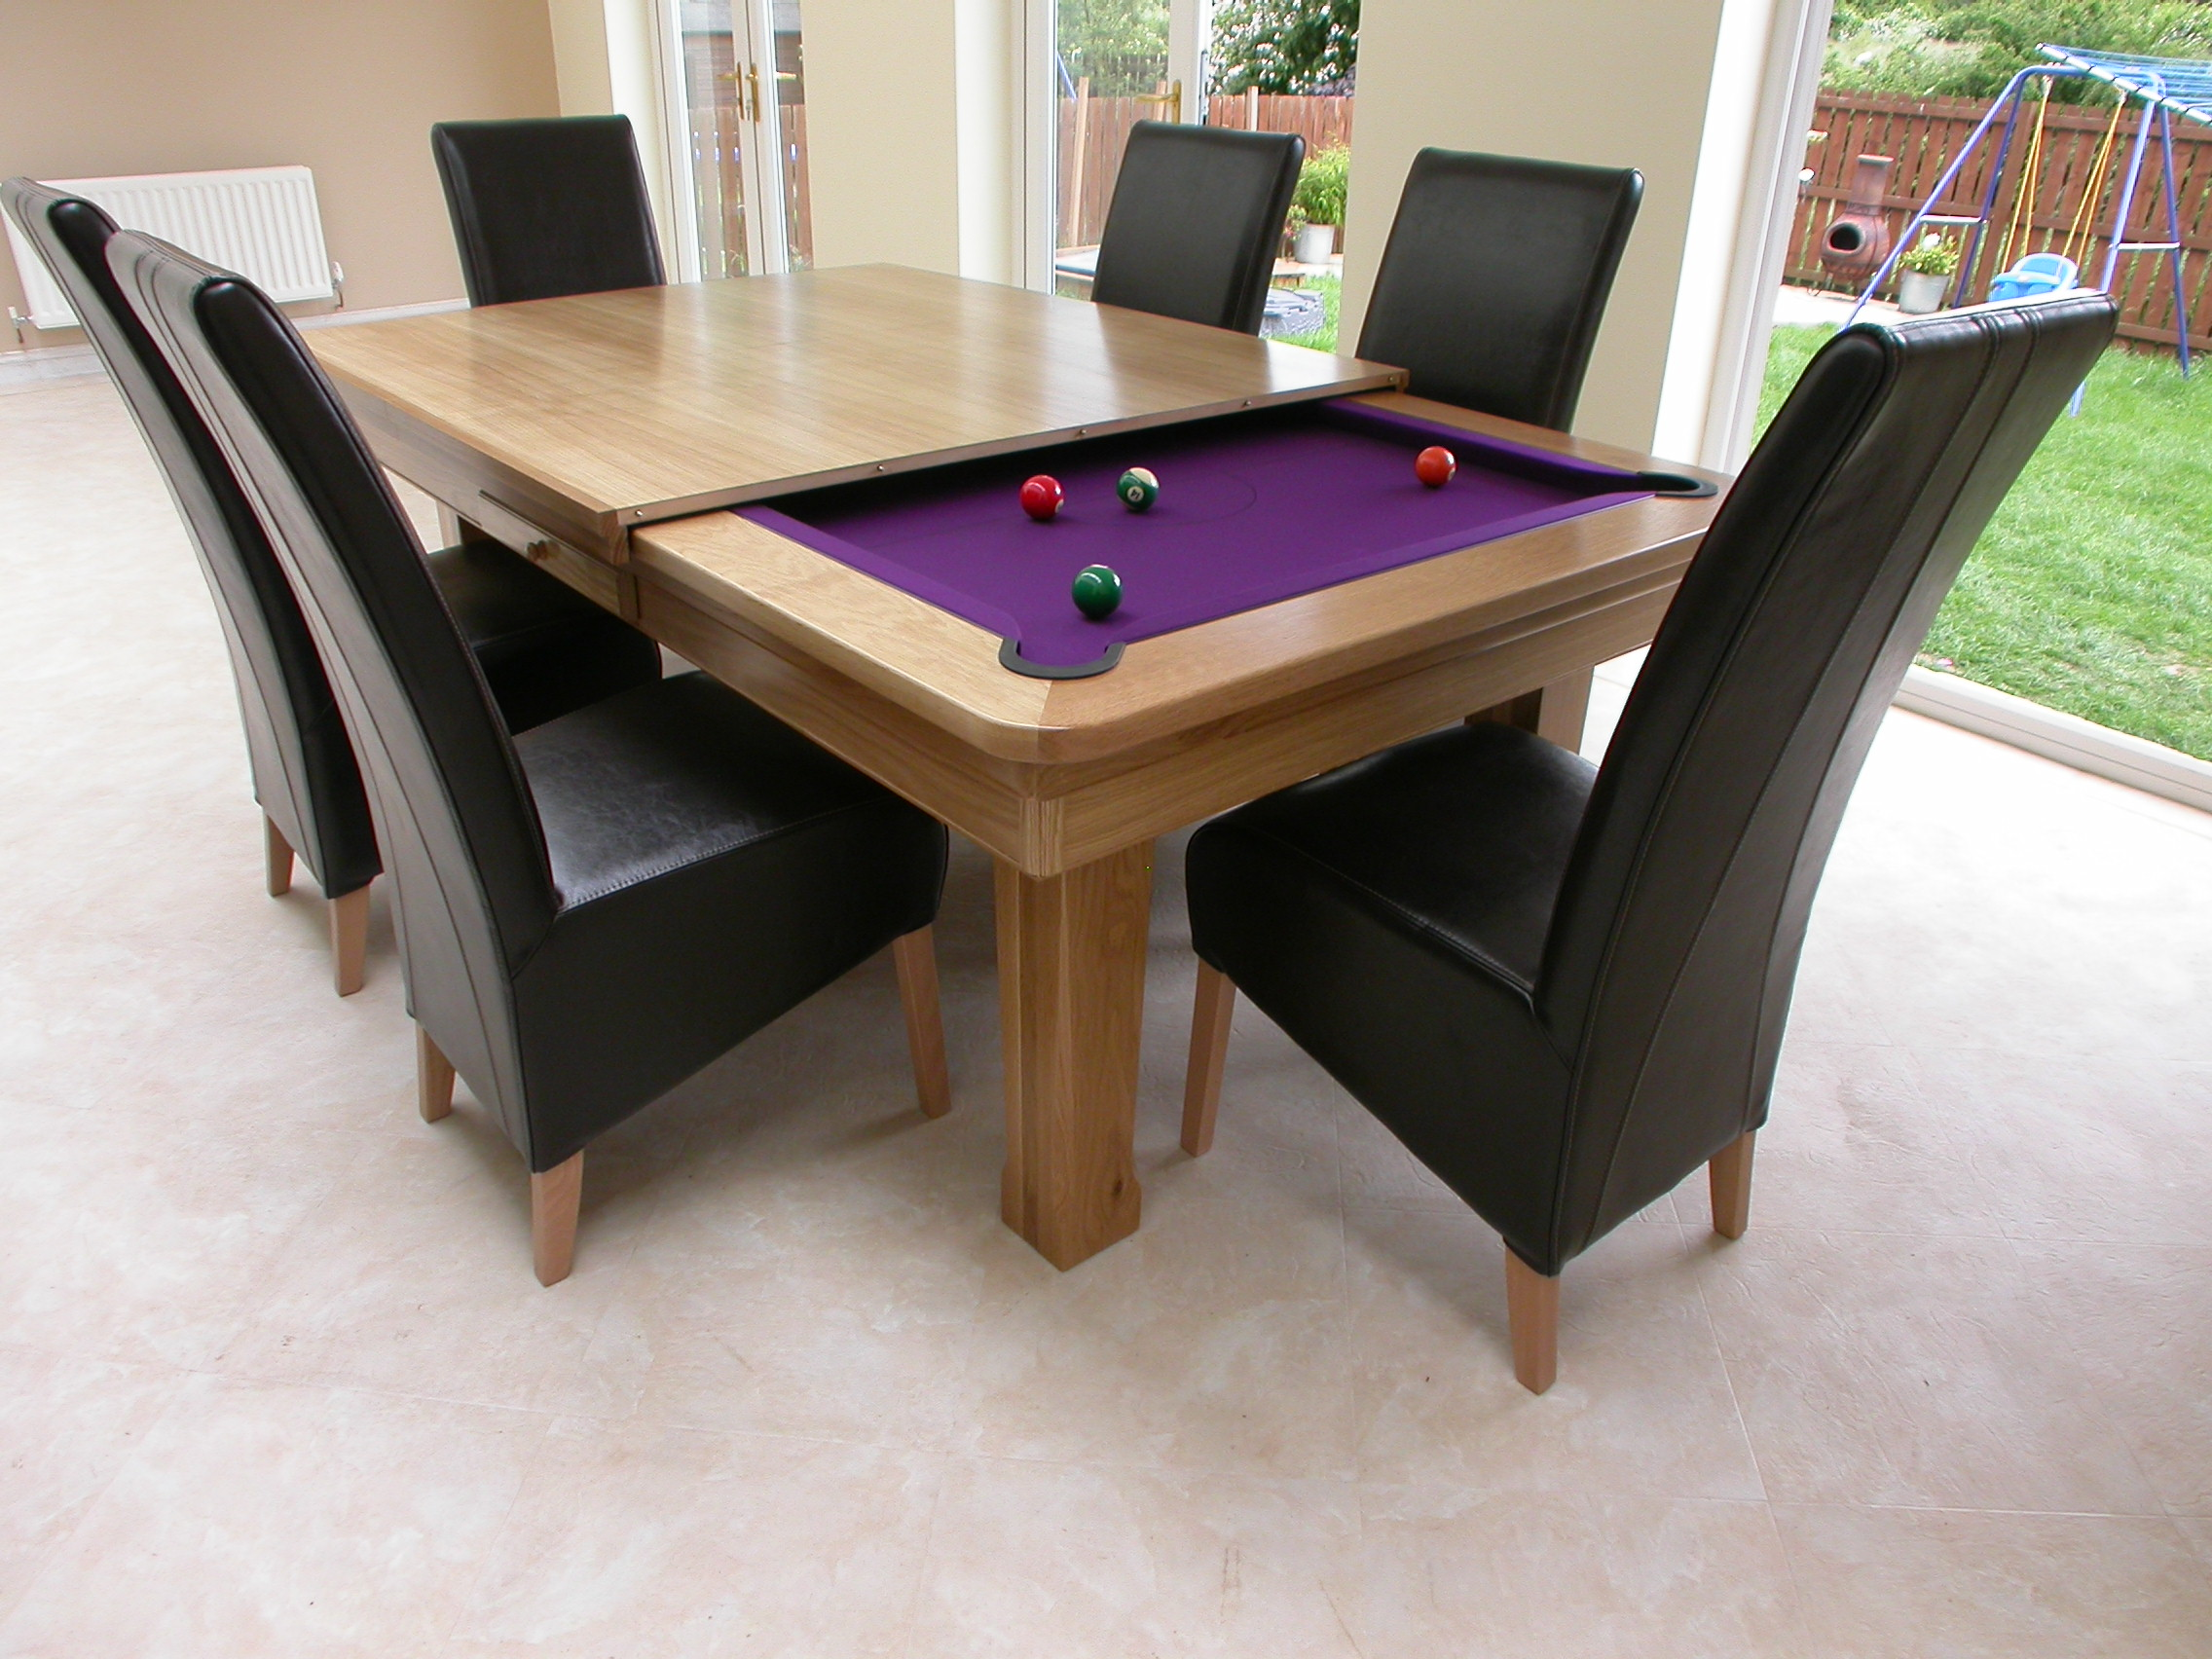 Tips Best Mizerak Pool Table For Family Fun Room Ideas - Pool table cloth replacement price